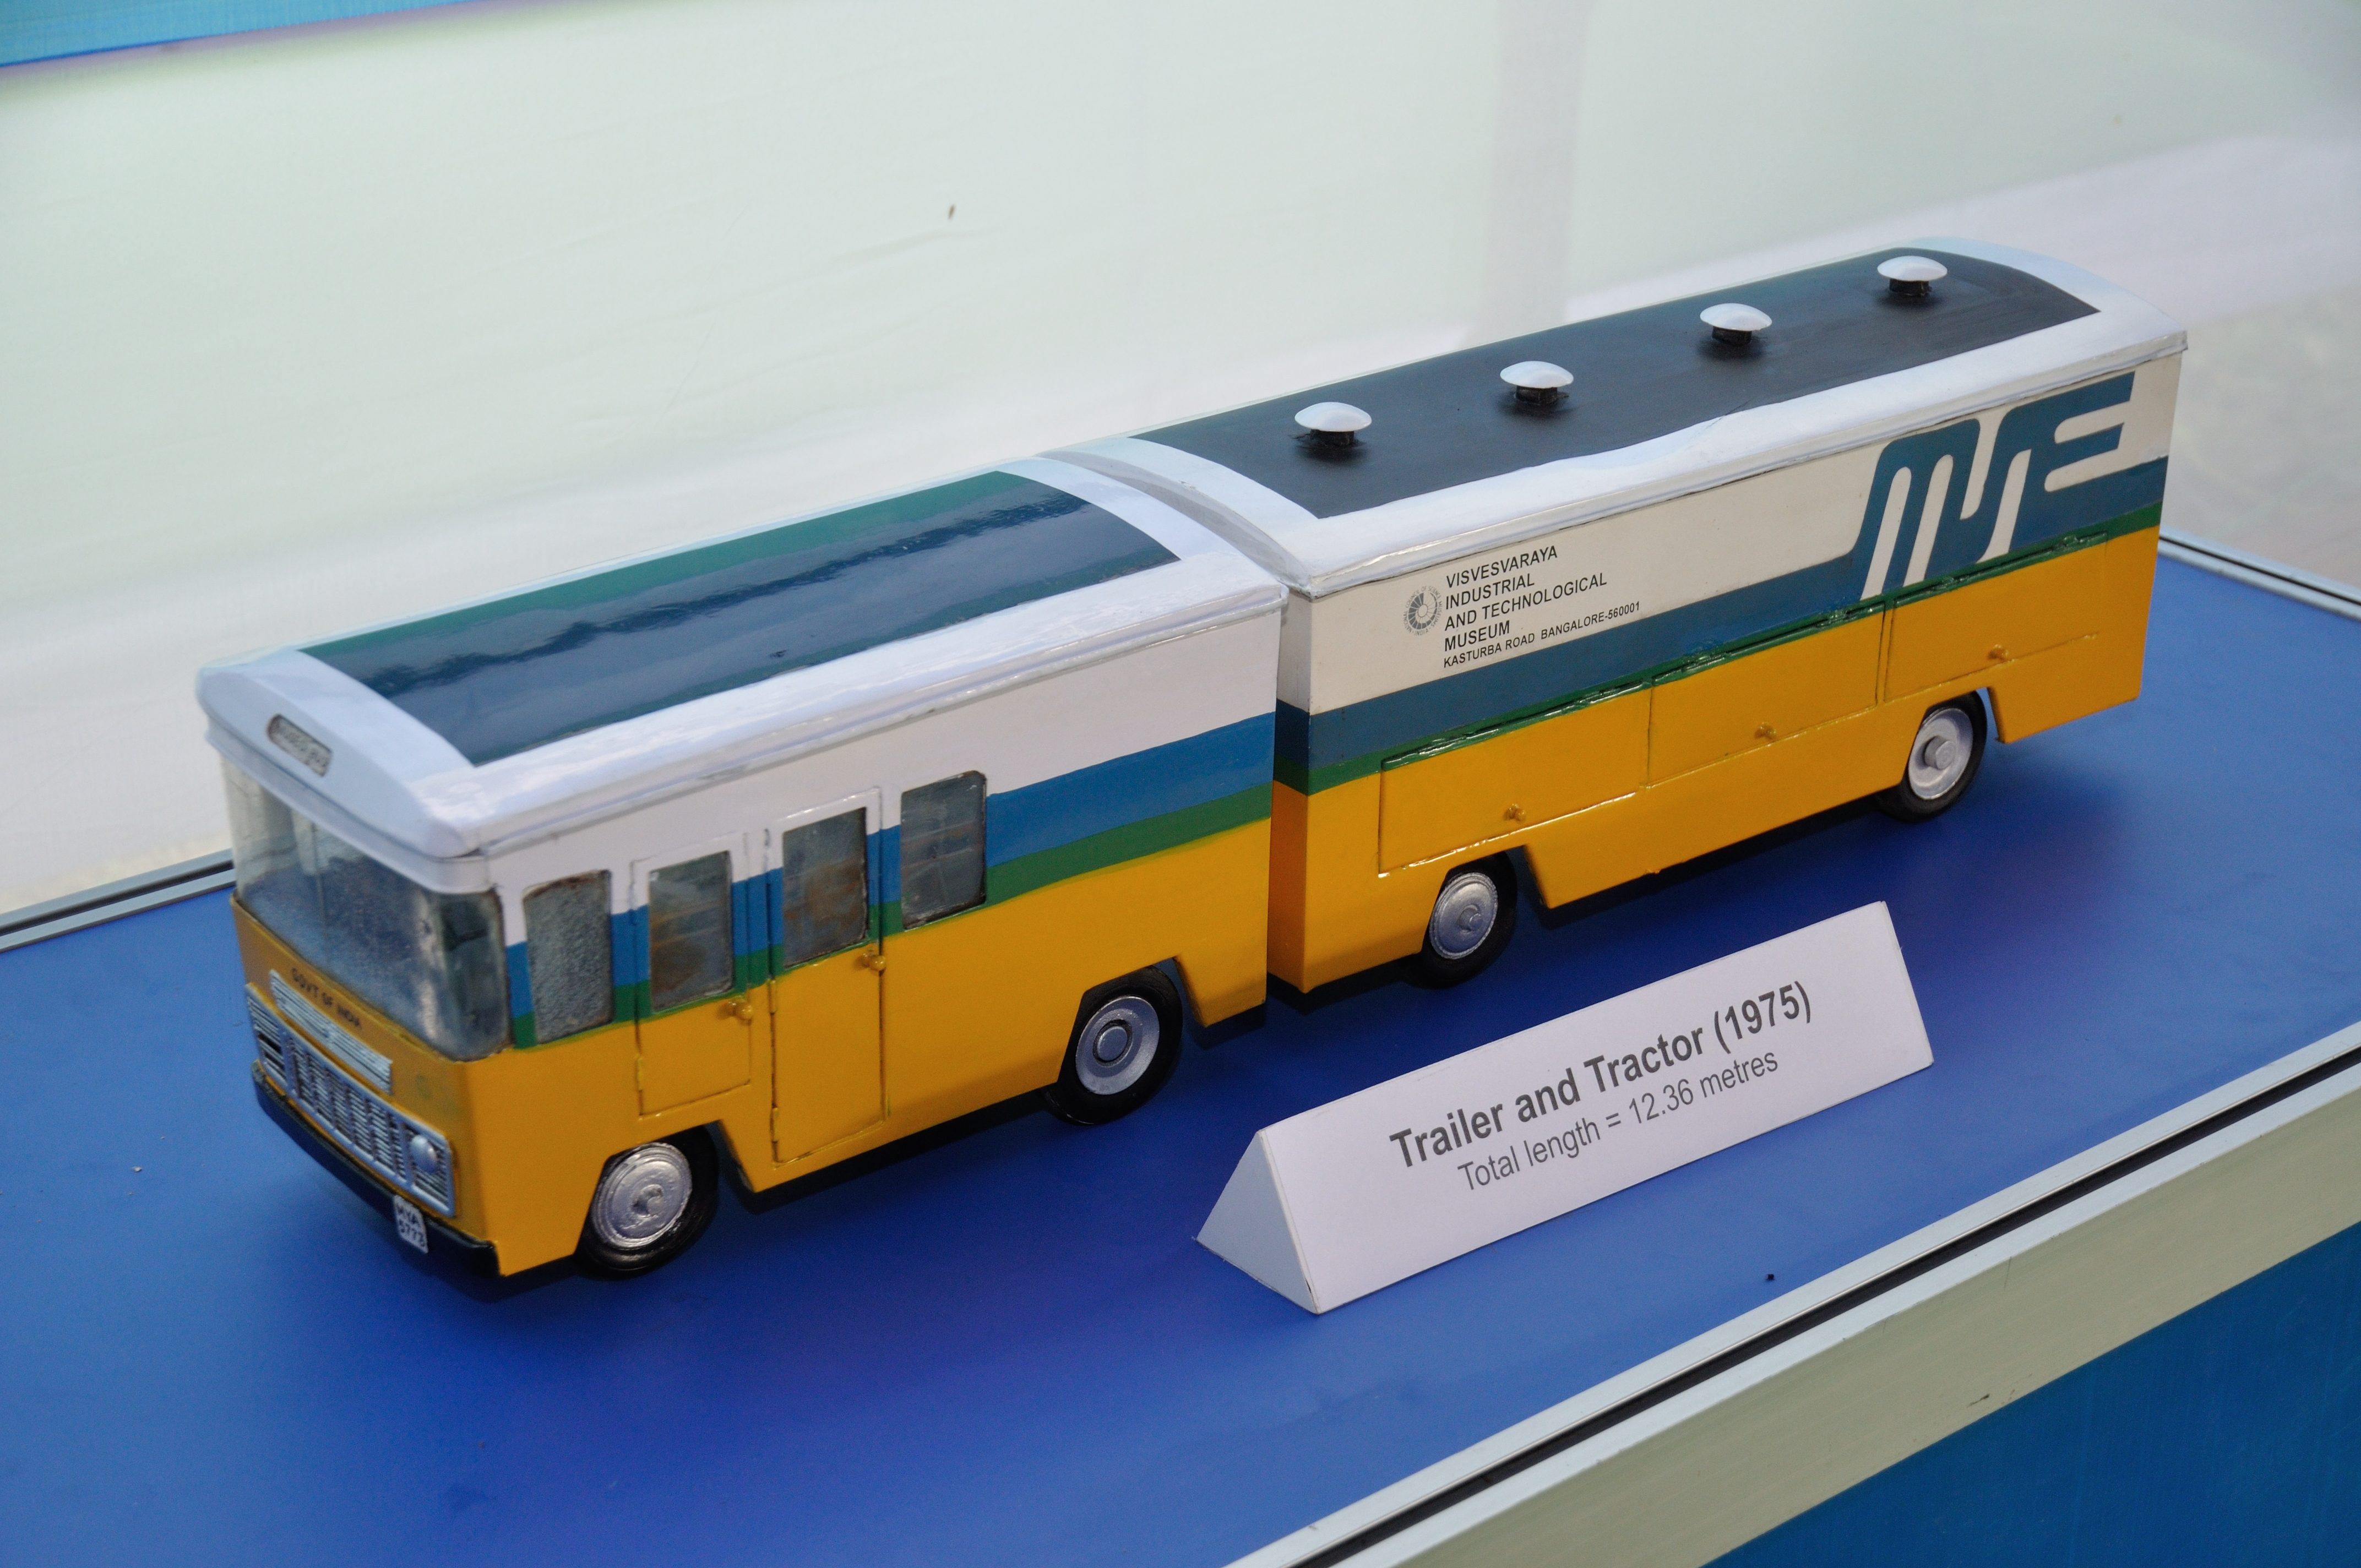 file discontinued trailer and tractor 1975 mse bus model mobile